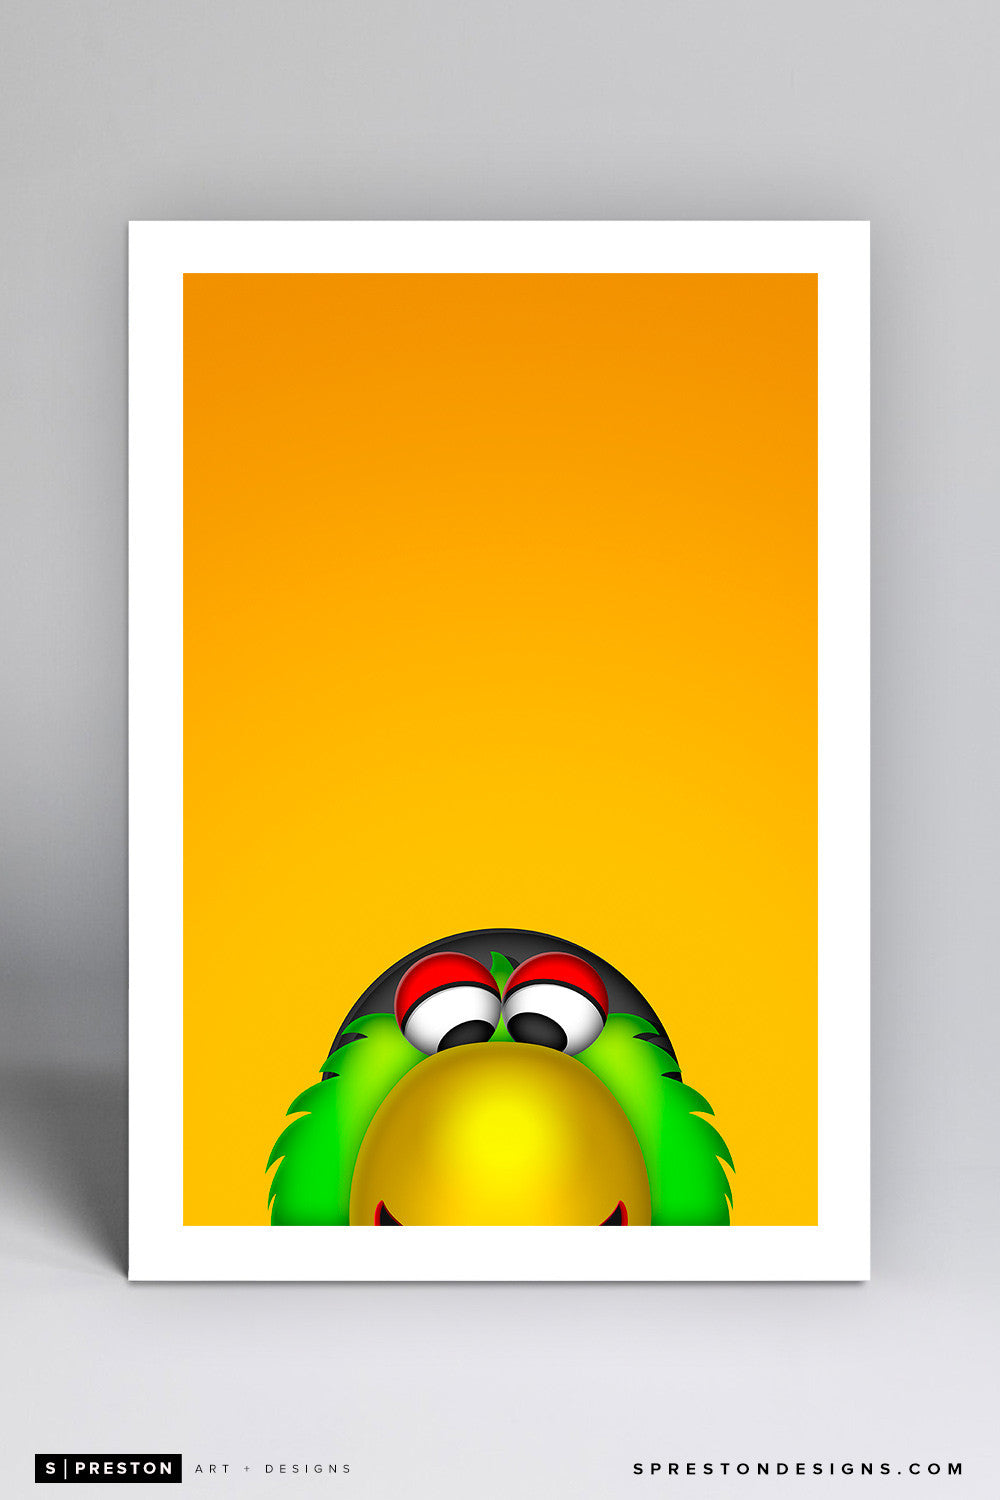 Minimalist Pirate Parrot Art Print - Pittsburgh Pirates - S. Preston Art + Designs